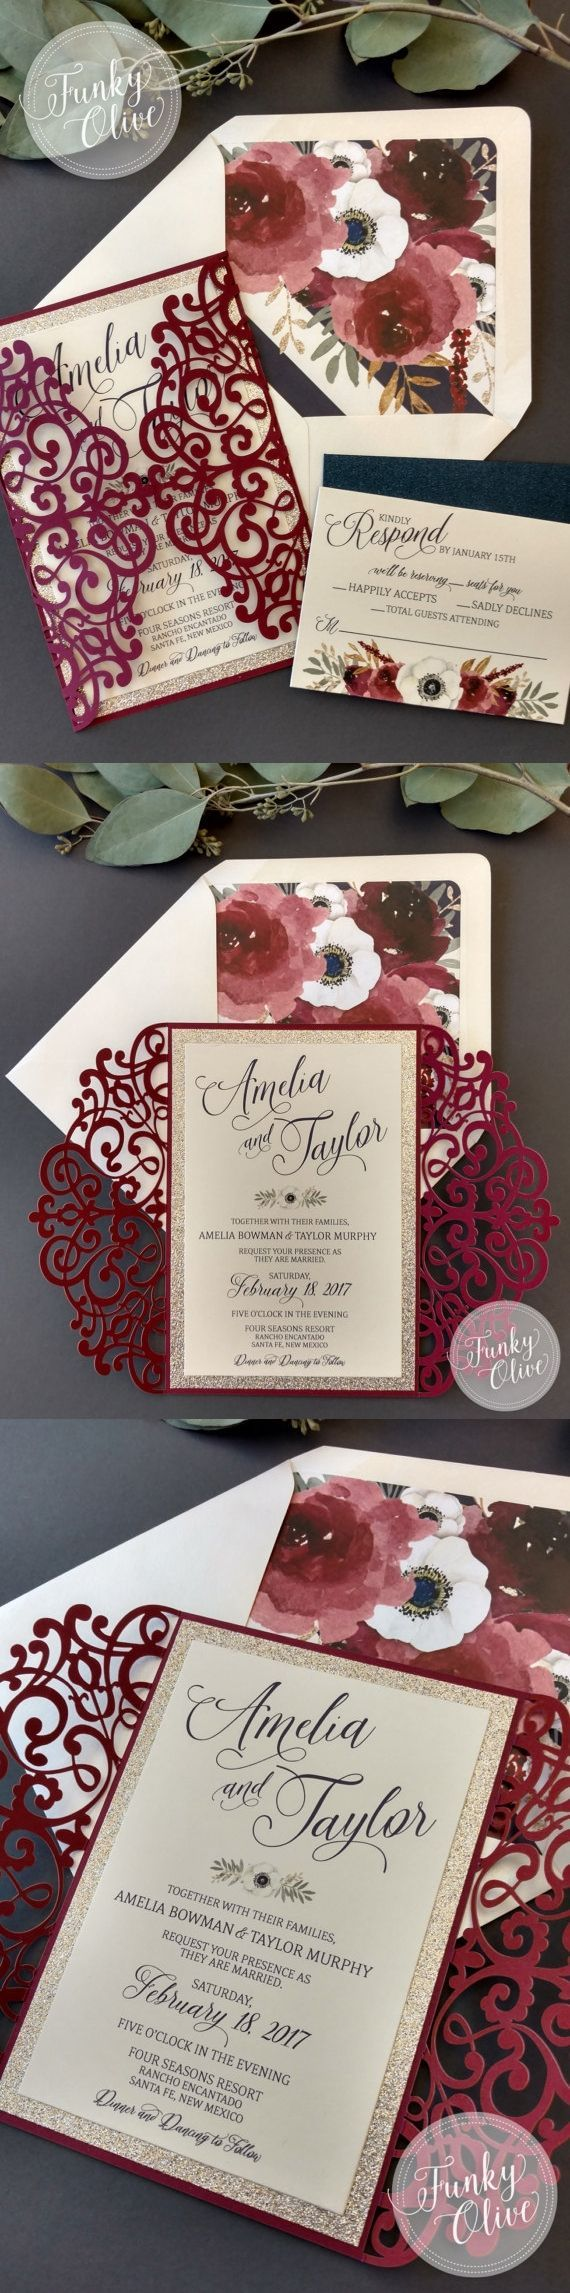 funny wedding invitation rsvp goes viral%0A Laser Cut Wedding Invitation Package Burgundy Navy Gold Glitter Anemone  Florals Invitation Response Card DEPOSIT or